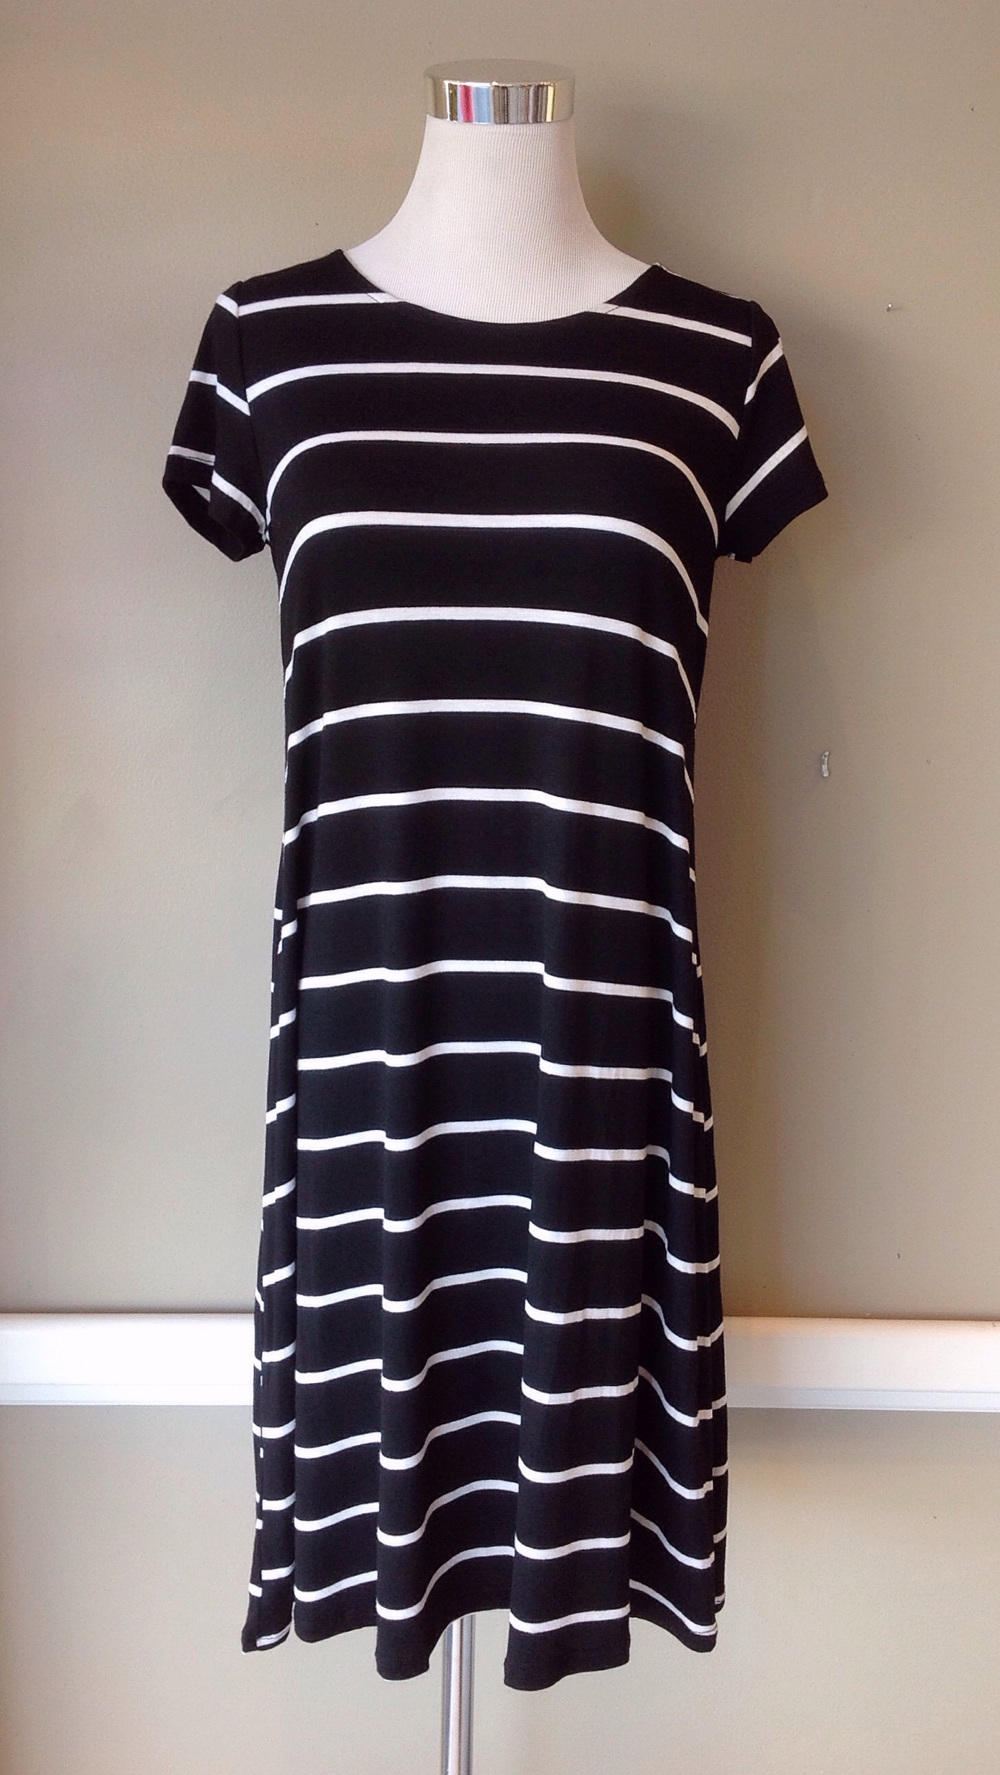 Black and white stripe T-shirt dress, $35